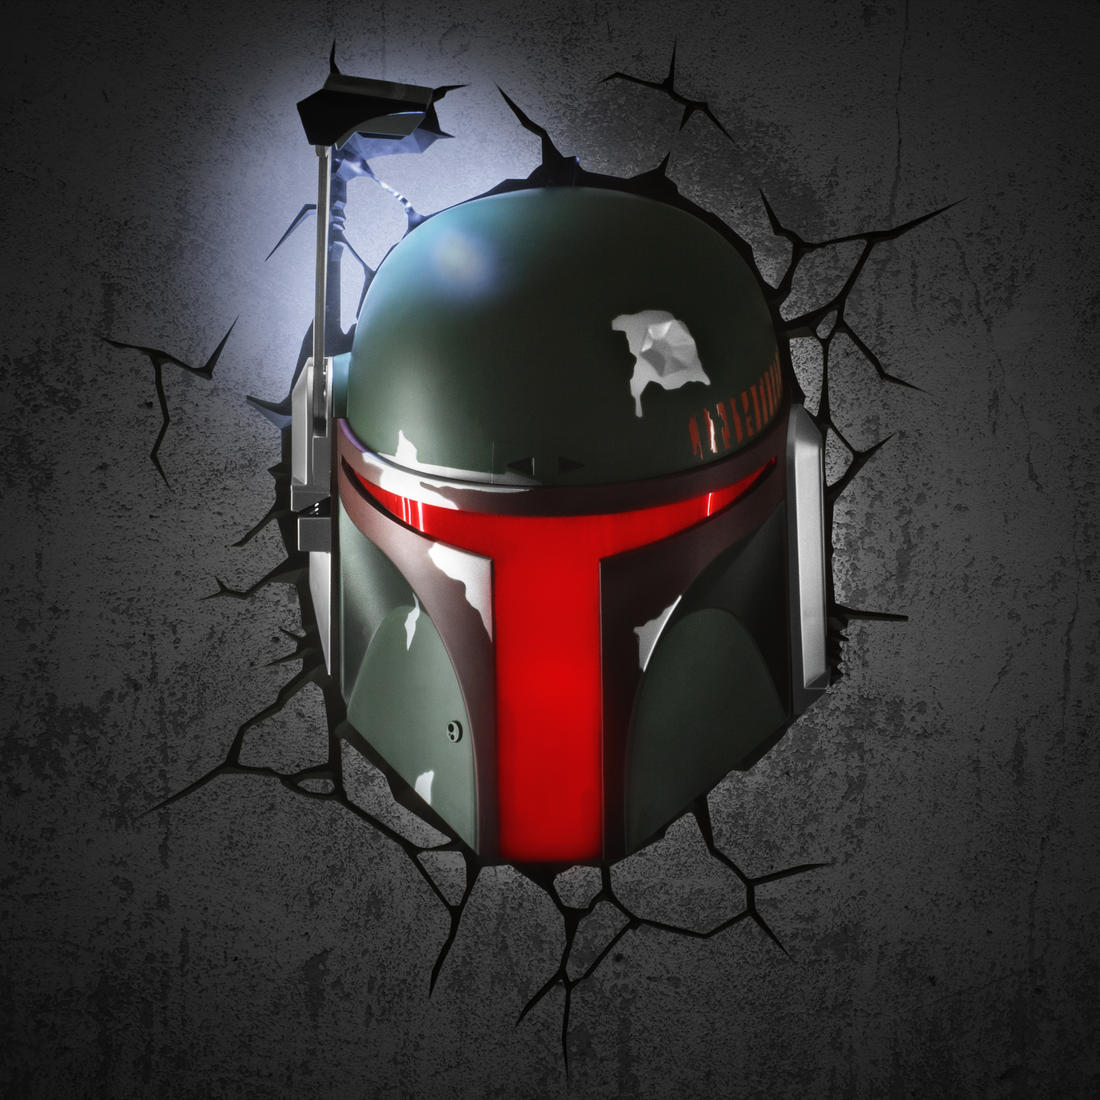 star wars wandlampe boba fett getdigital. Black Bedroom Furniture Sets. Home Design Ideas